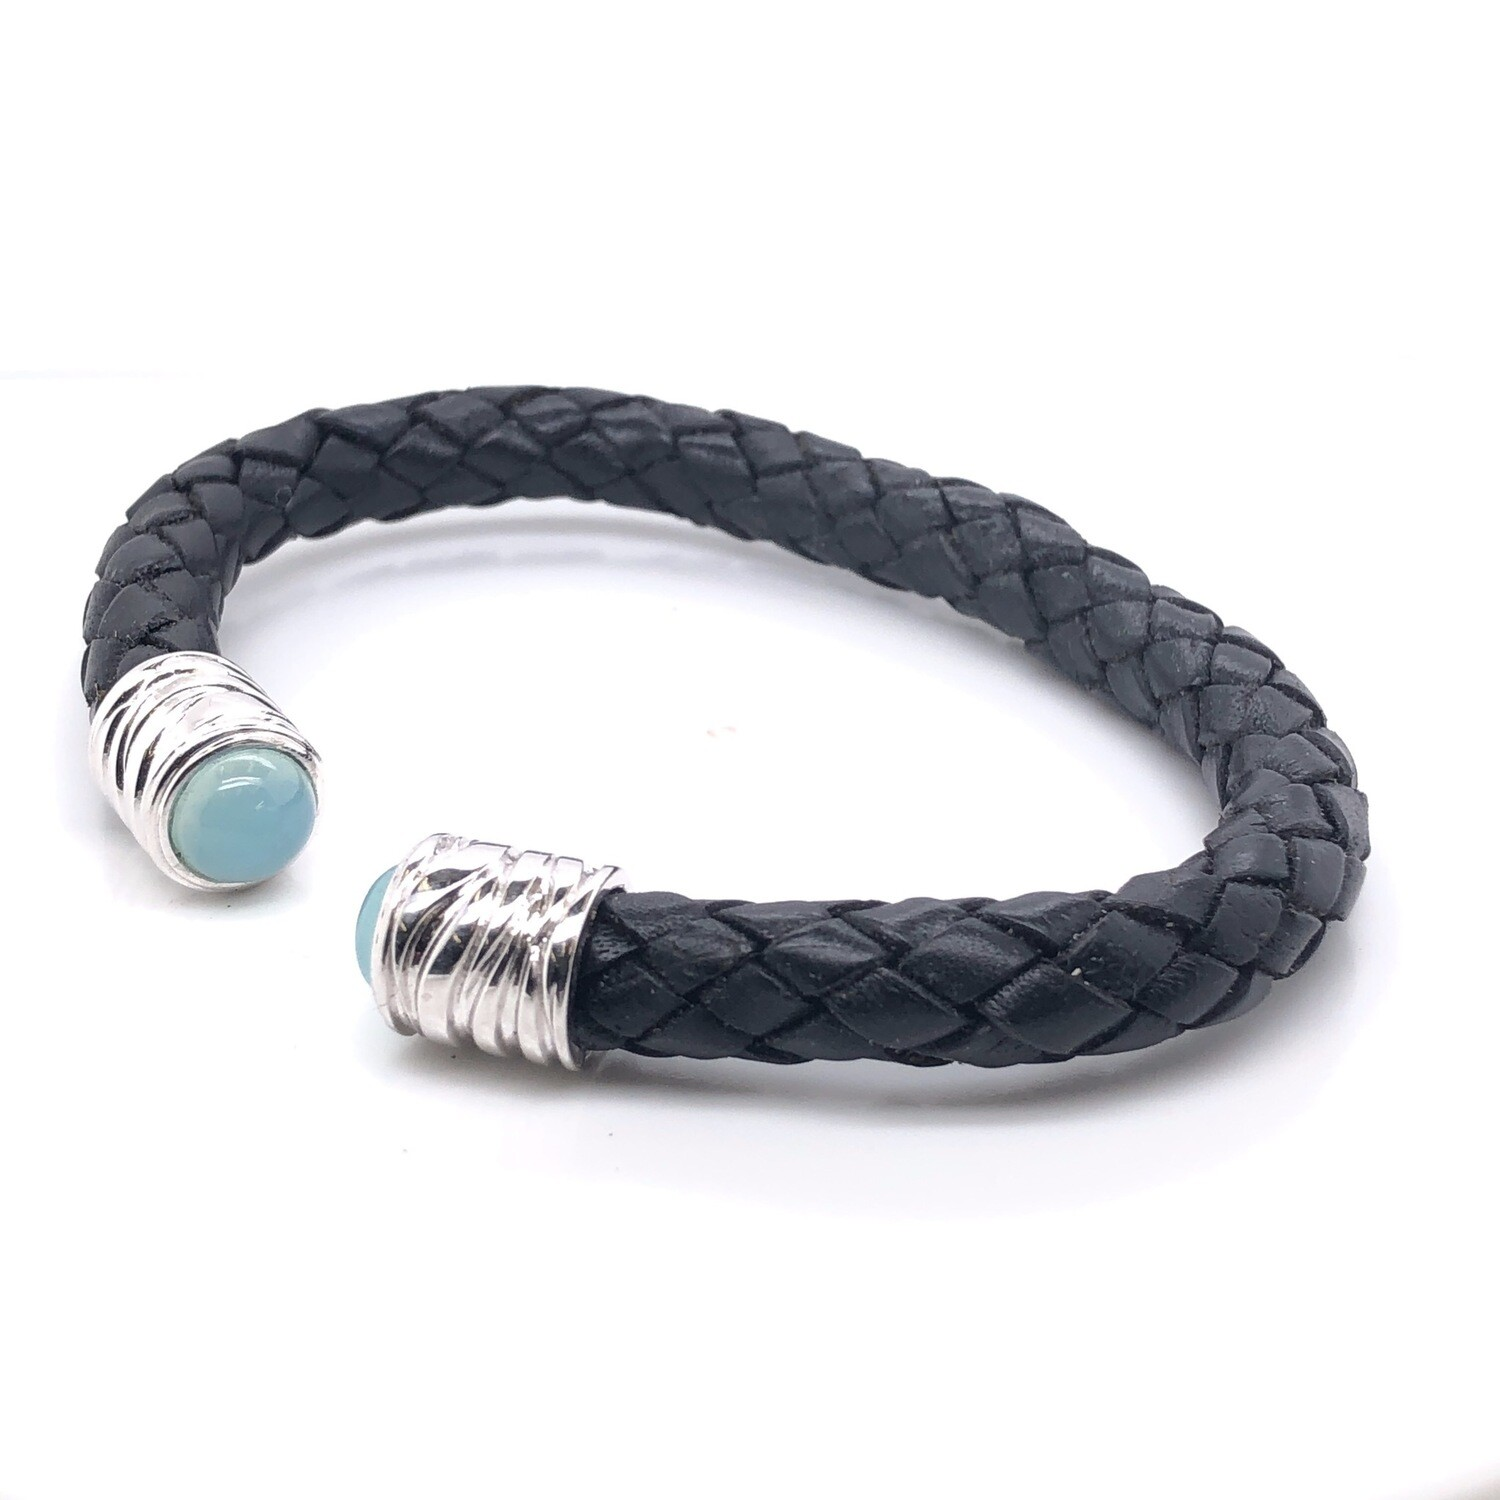 Leather Bracelet- One Size Fits All- Sterling Silver with Aqua Chalsedney Stones.